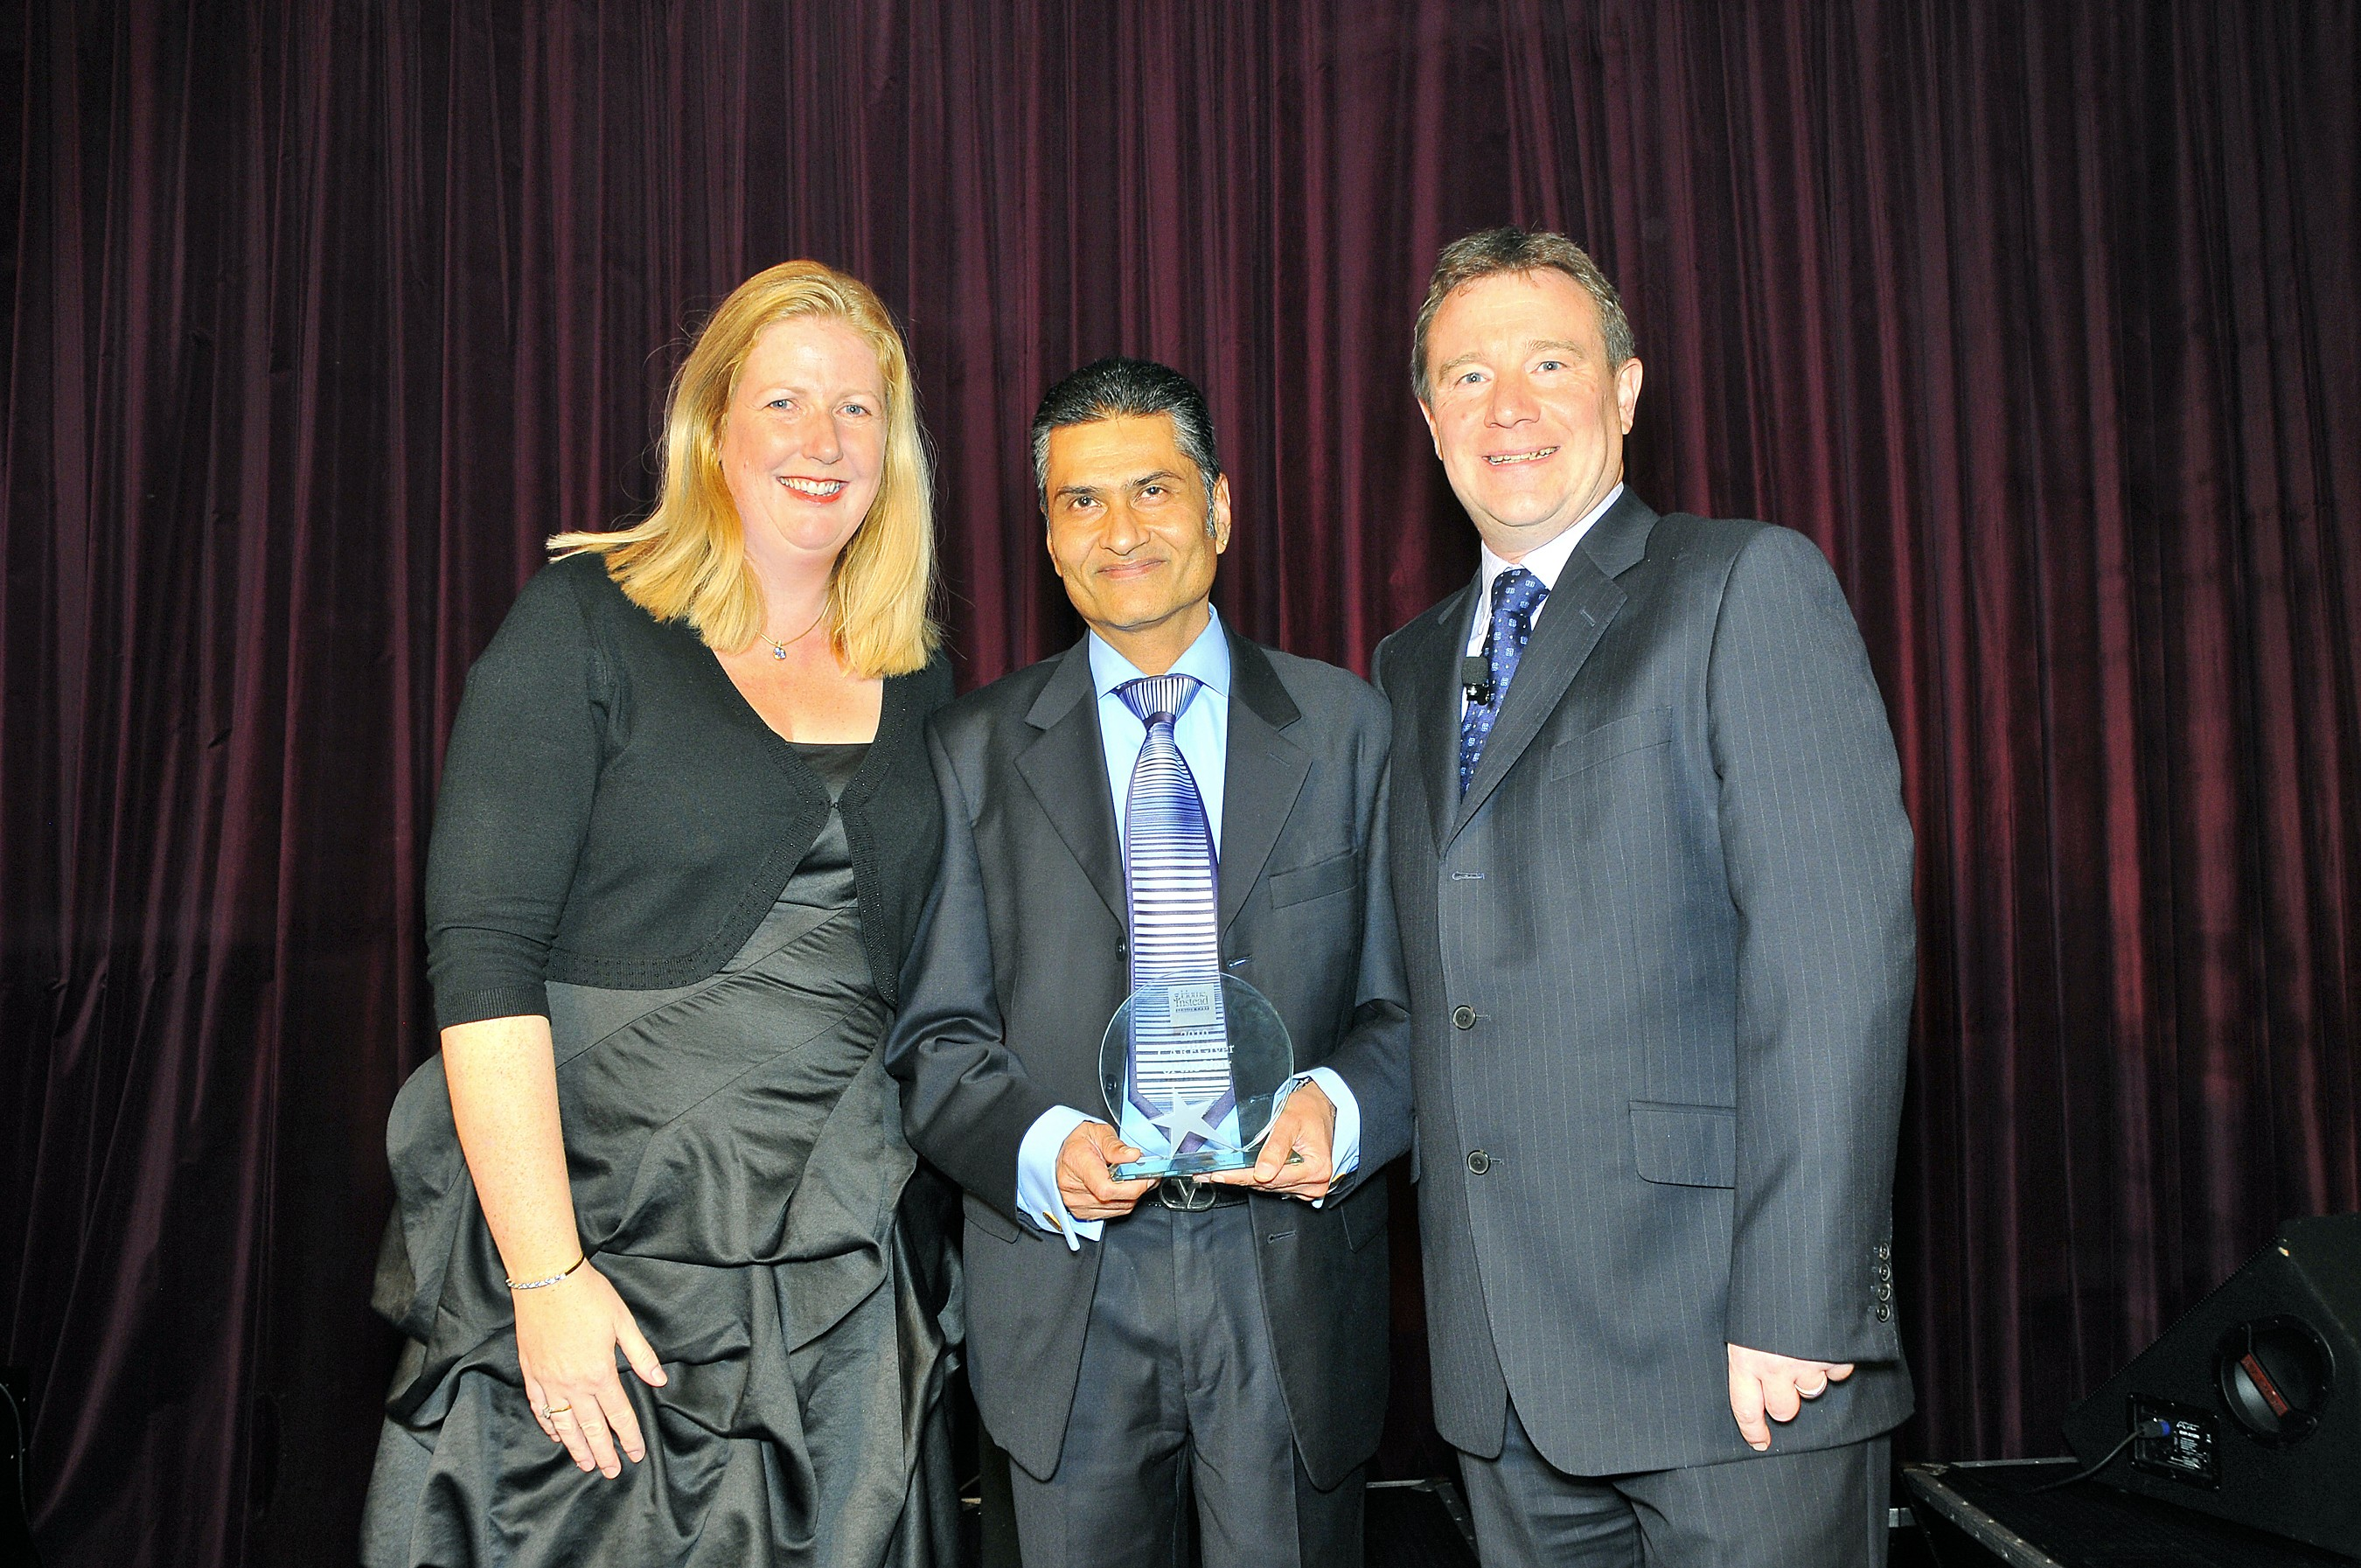 Home Instead Ealing CAREgiver Vyom Padania holding his 'Caregiver of the Year' award